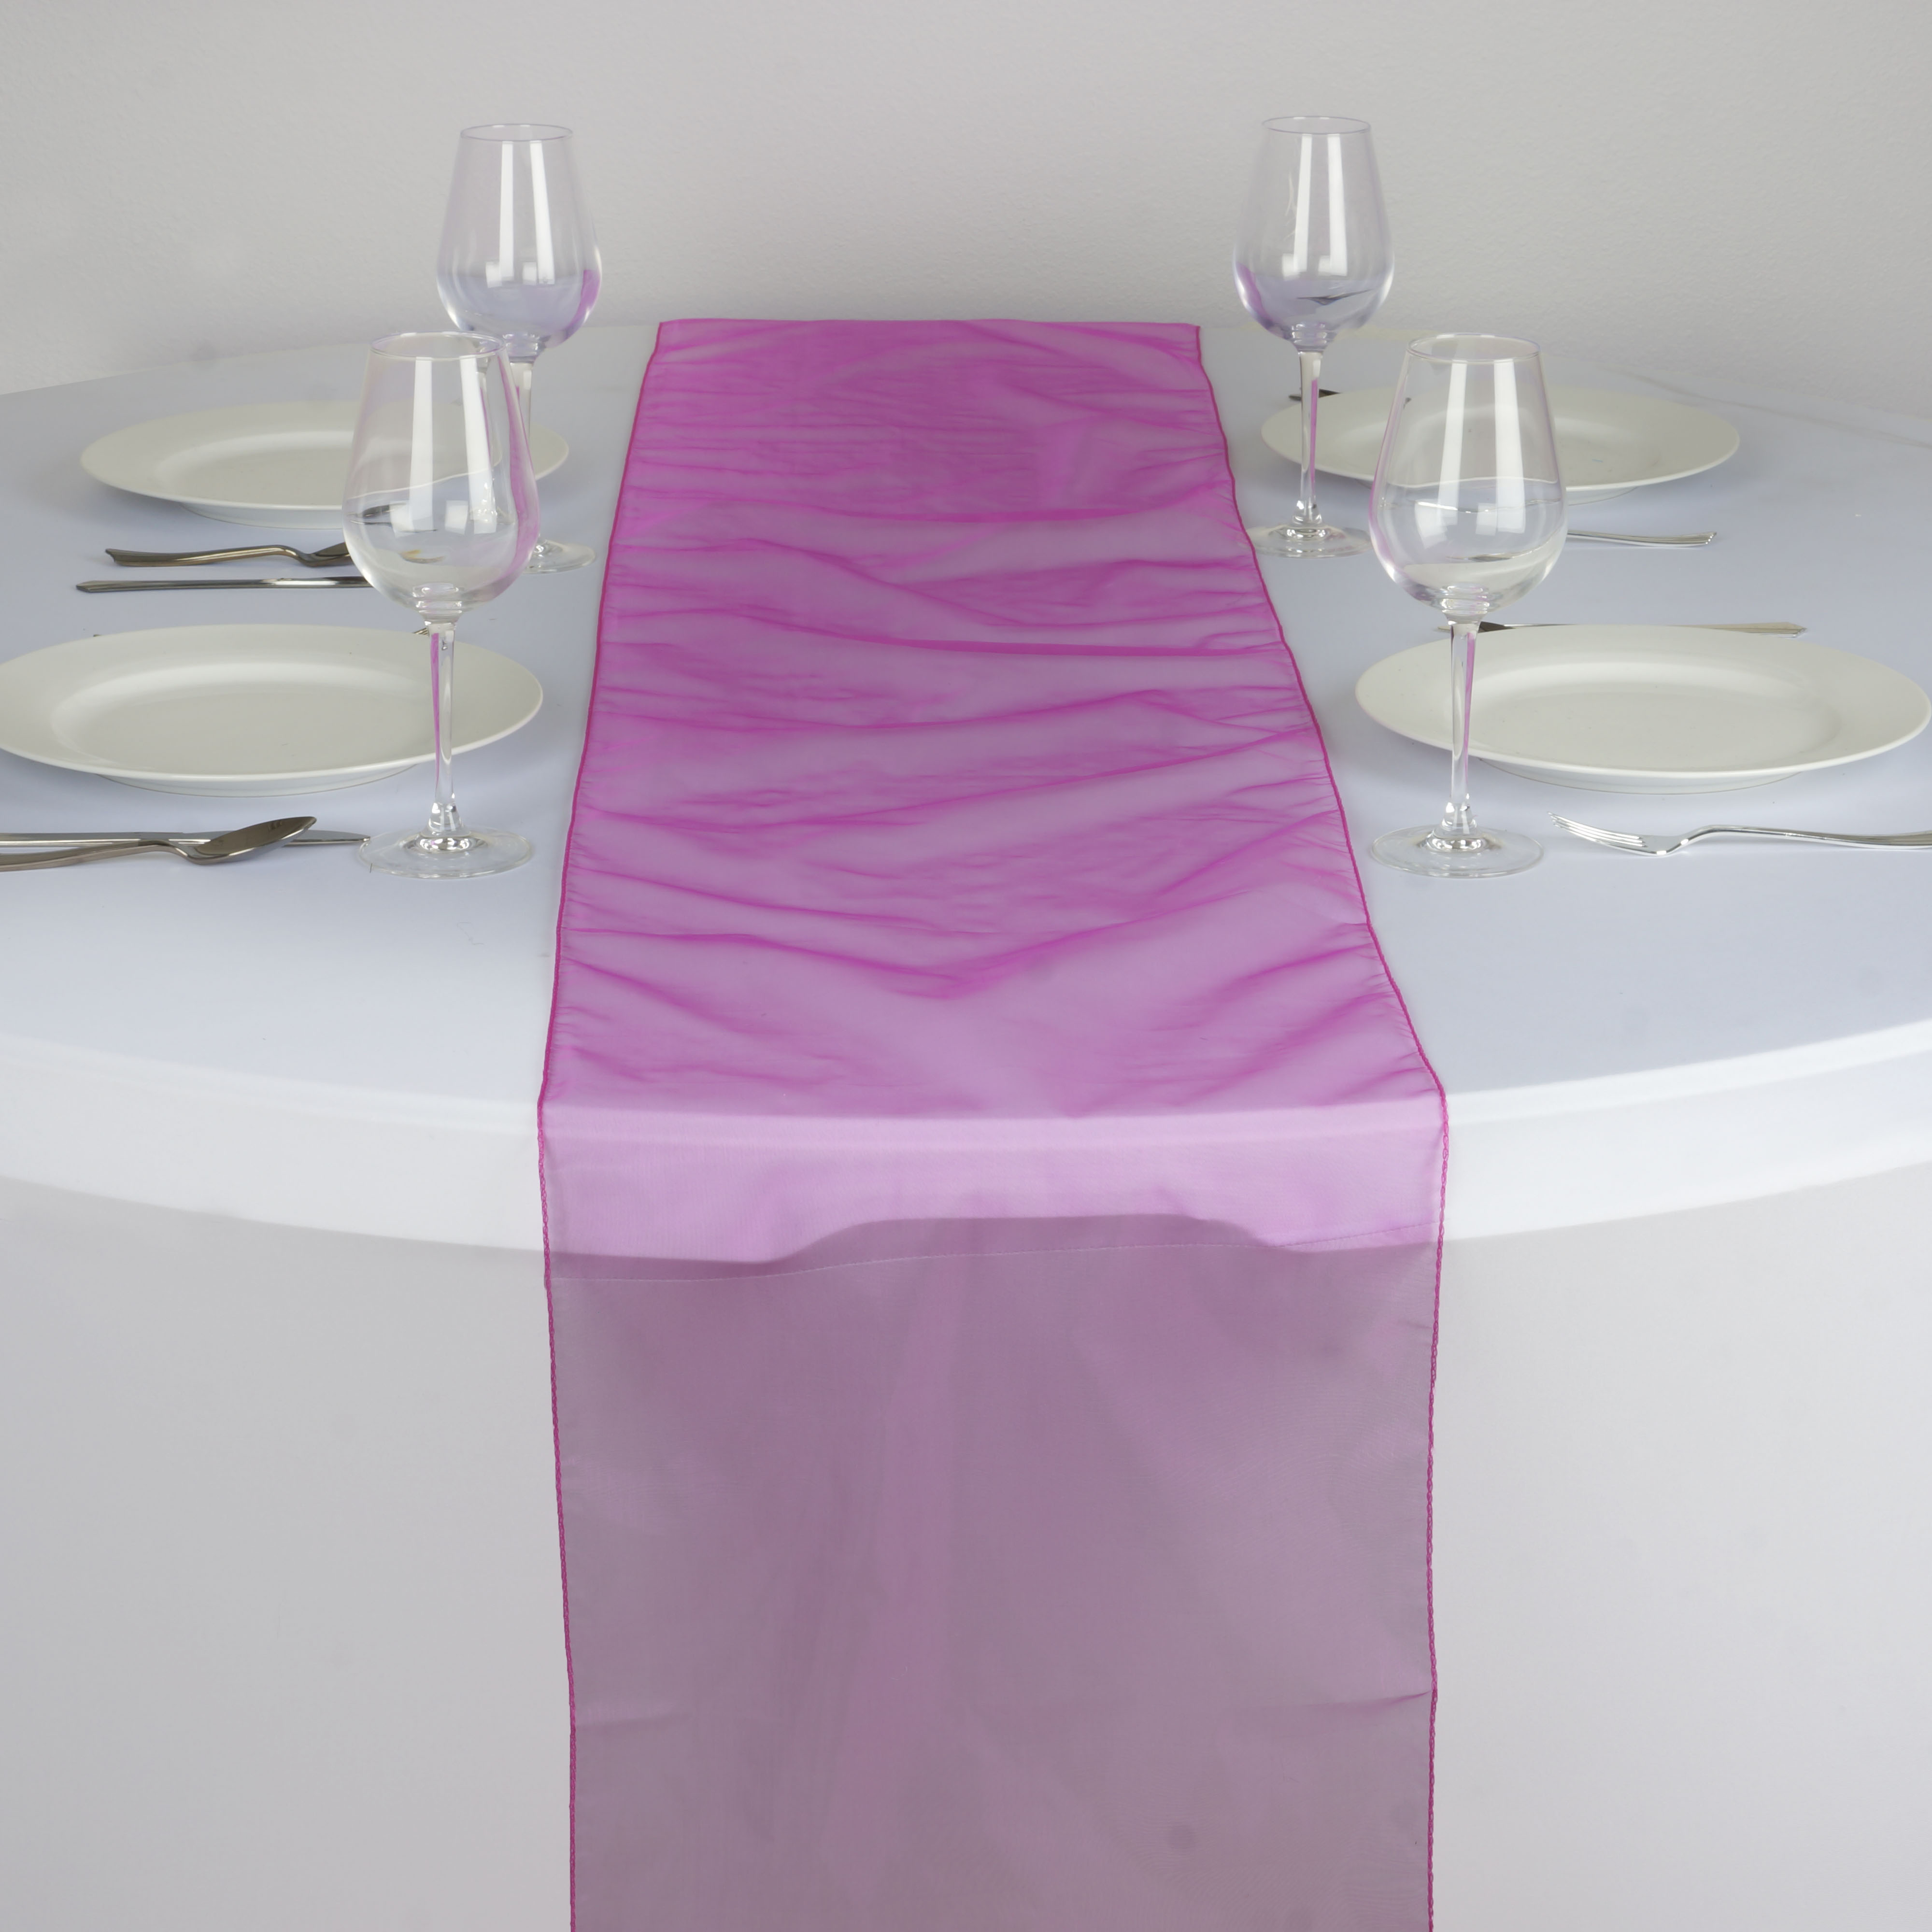 5 organza 14x108 table runners wedding party kitchen for Table runner